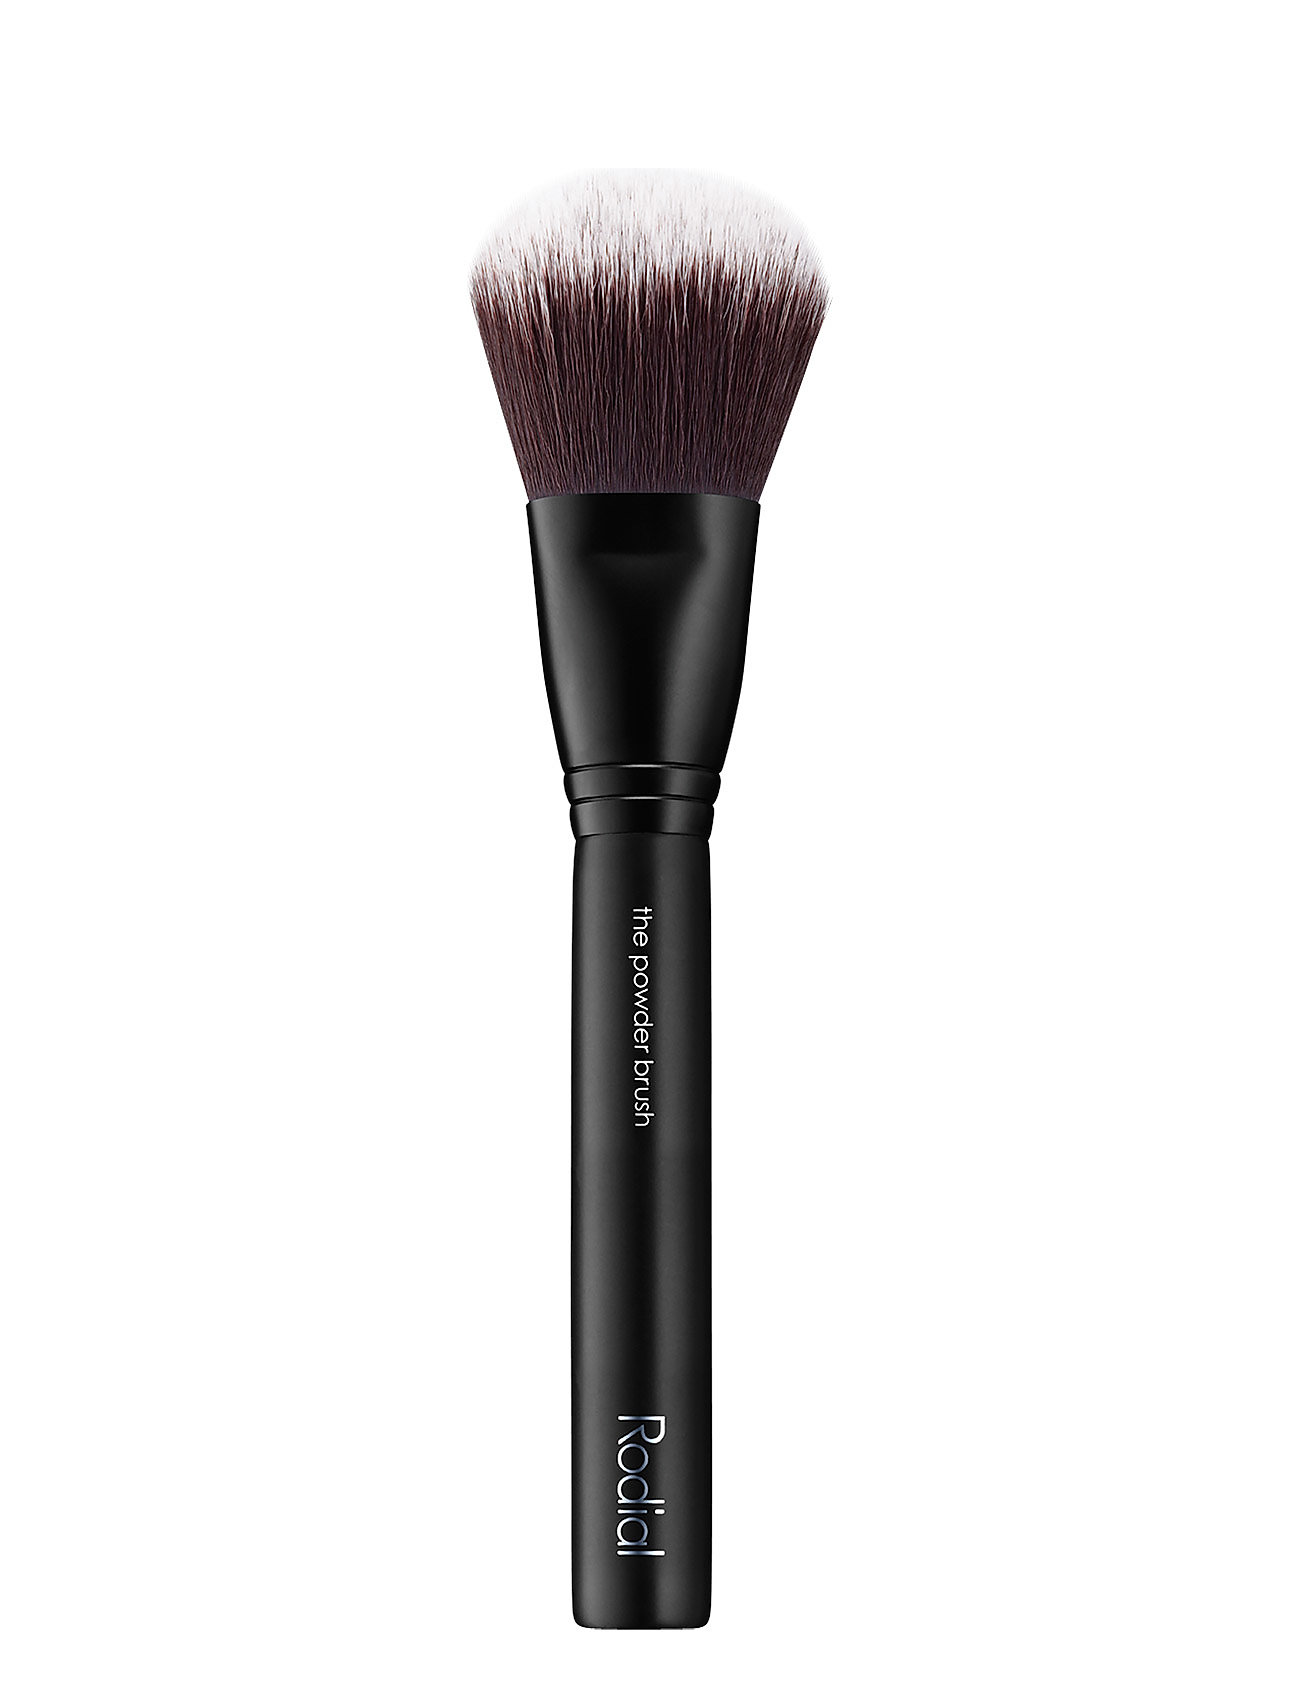 Rodial Powder Brush - CLEAR